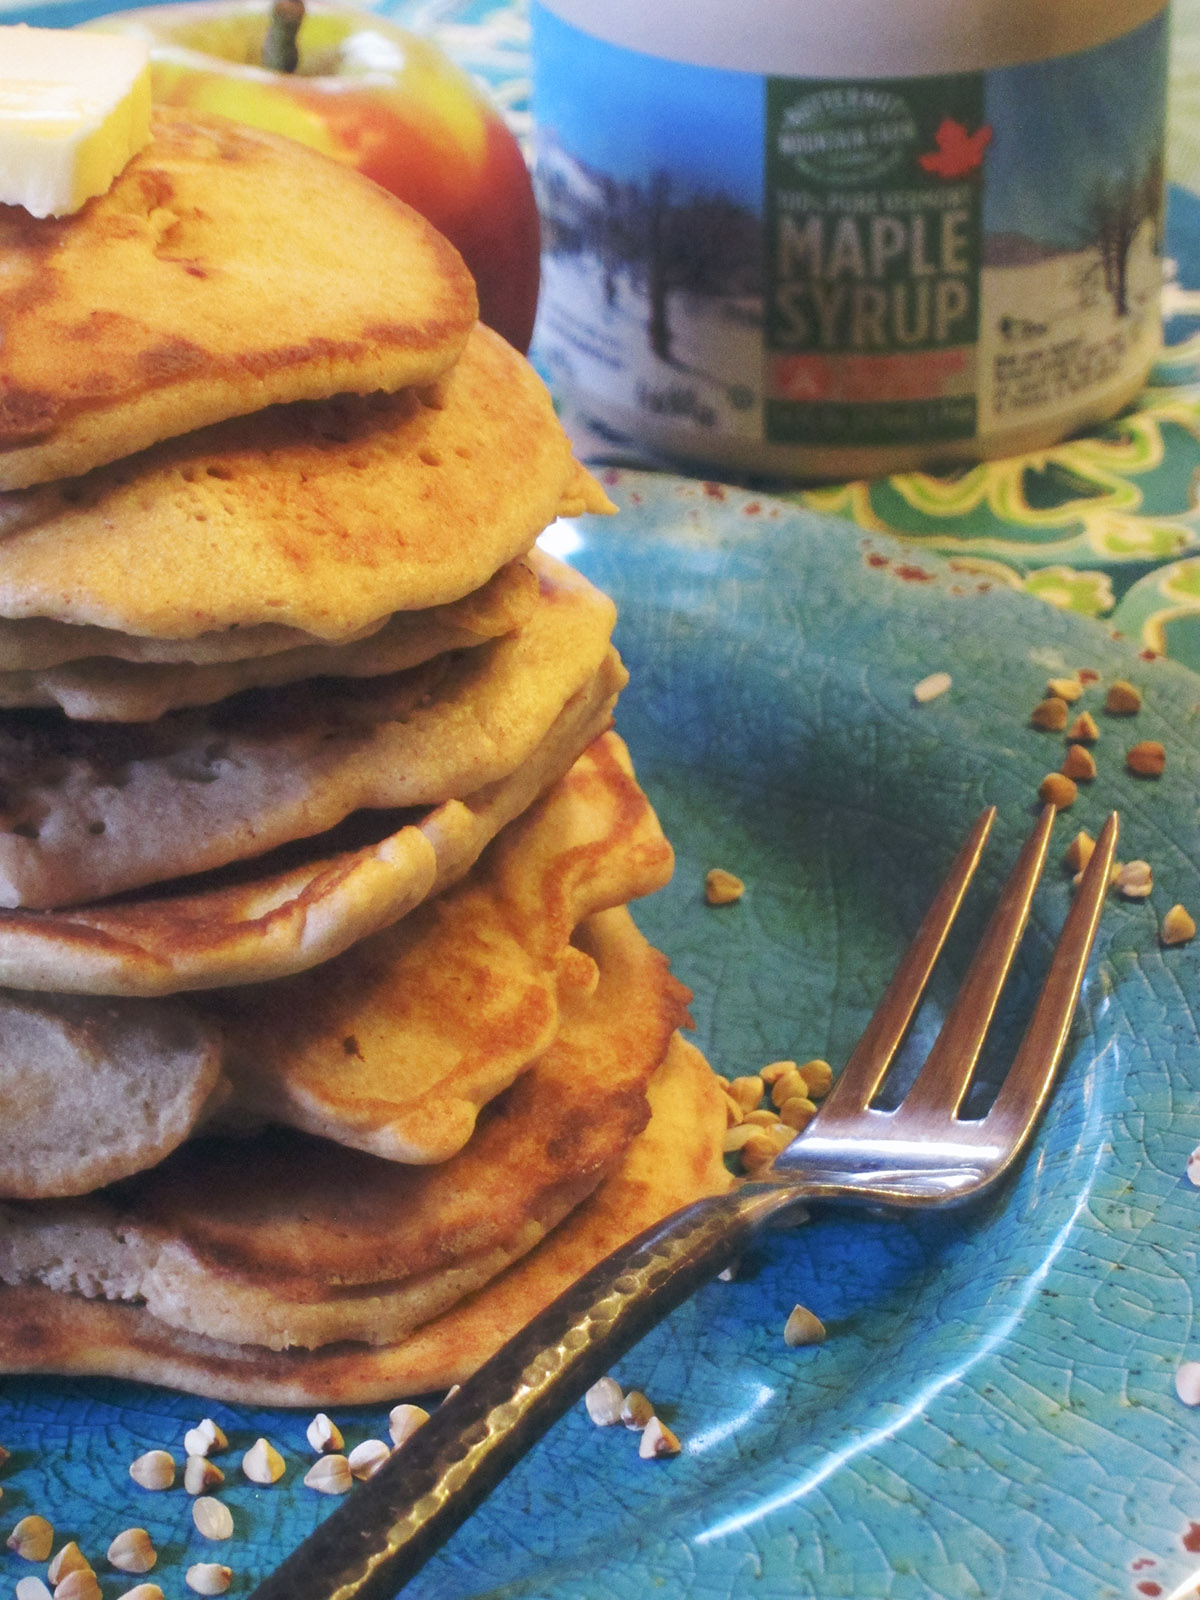 Buckwheat& Yogurt Pancakes with Apples (Gluten Free)